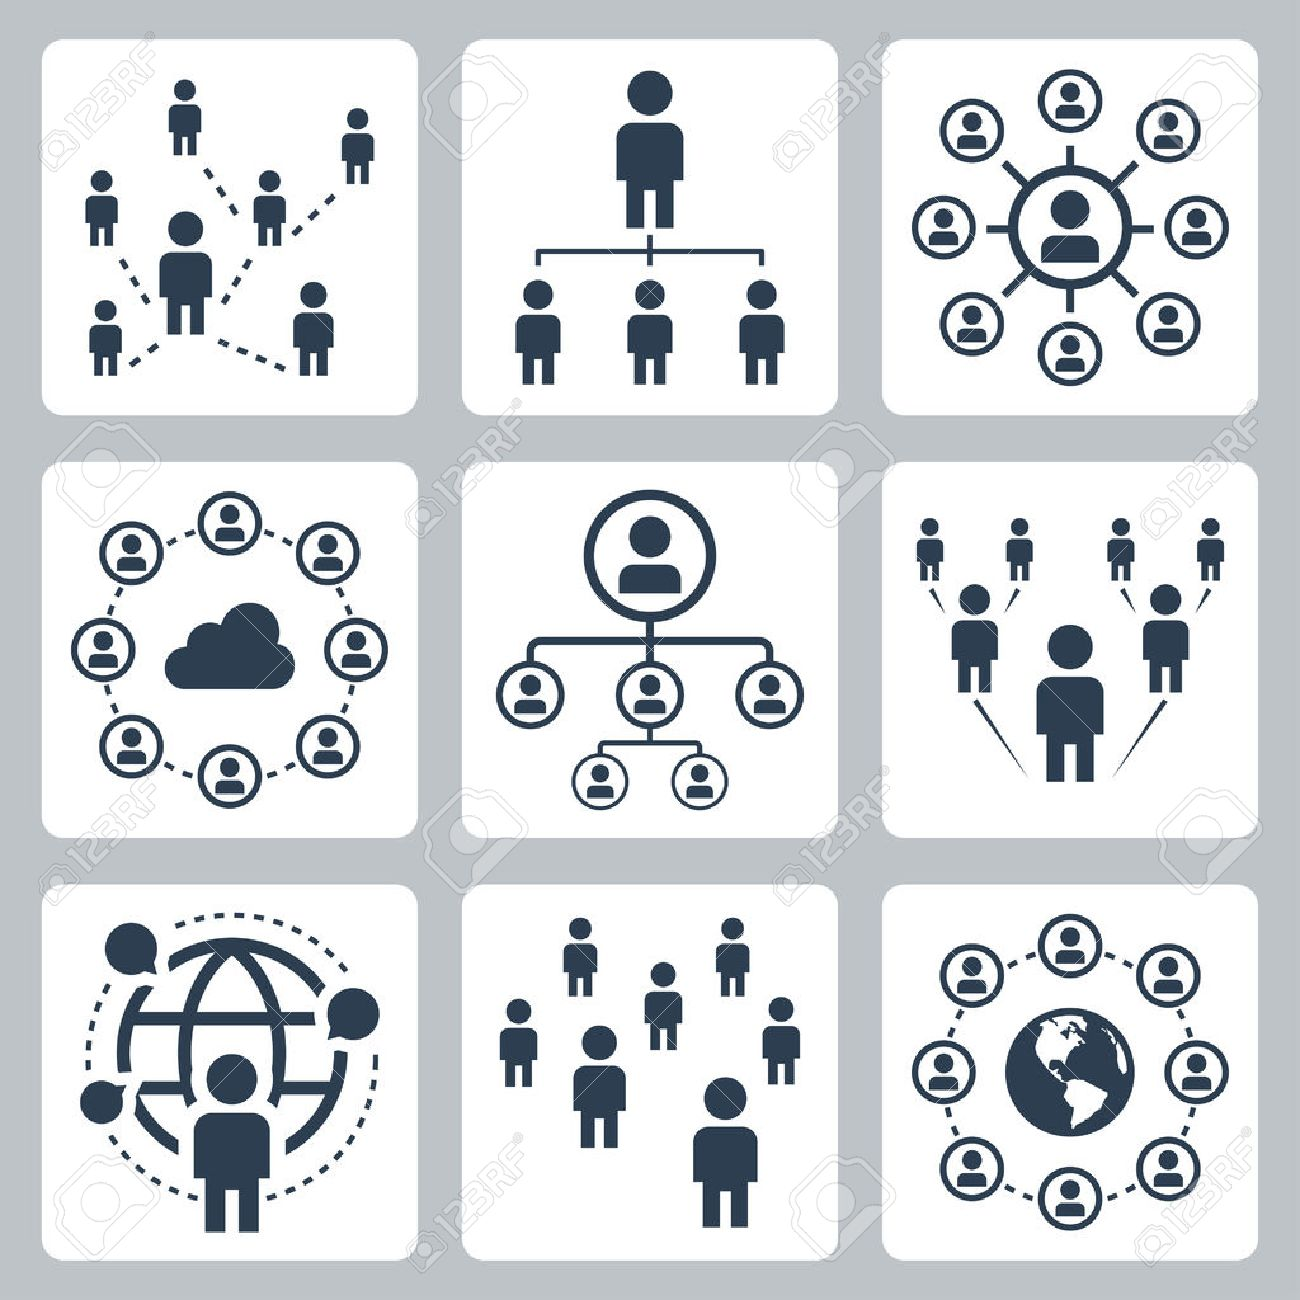 Social network, people and globalization icon set - 58518644